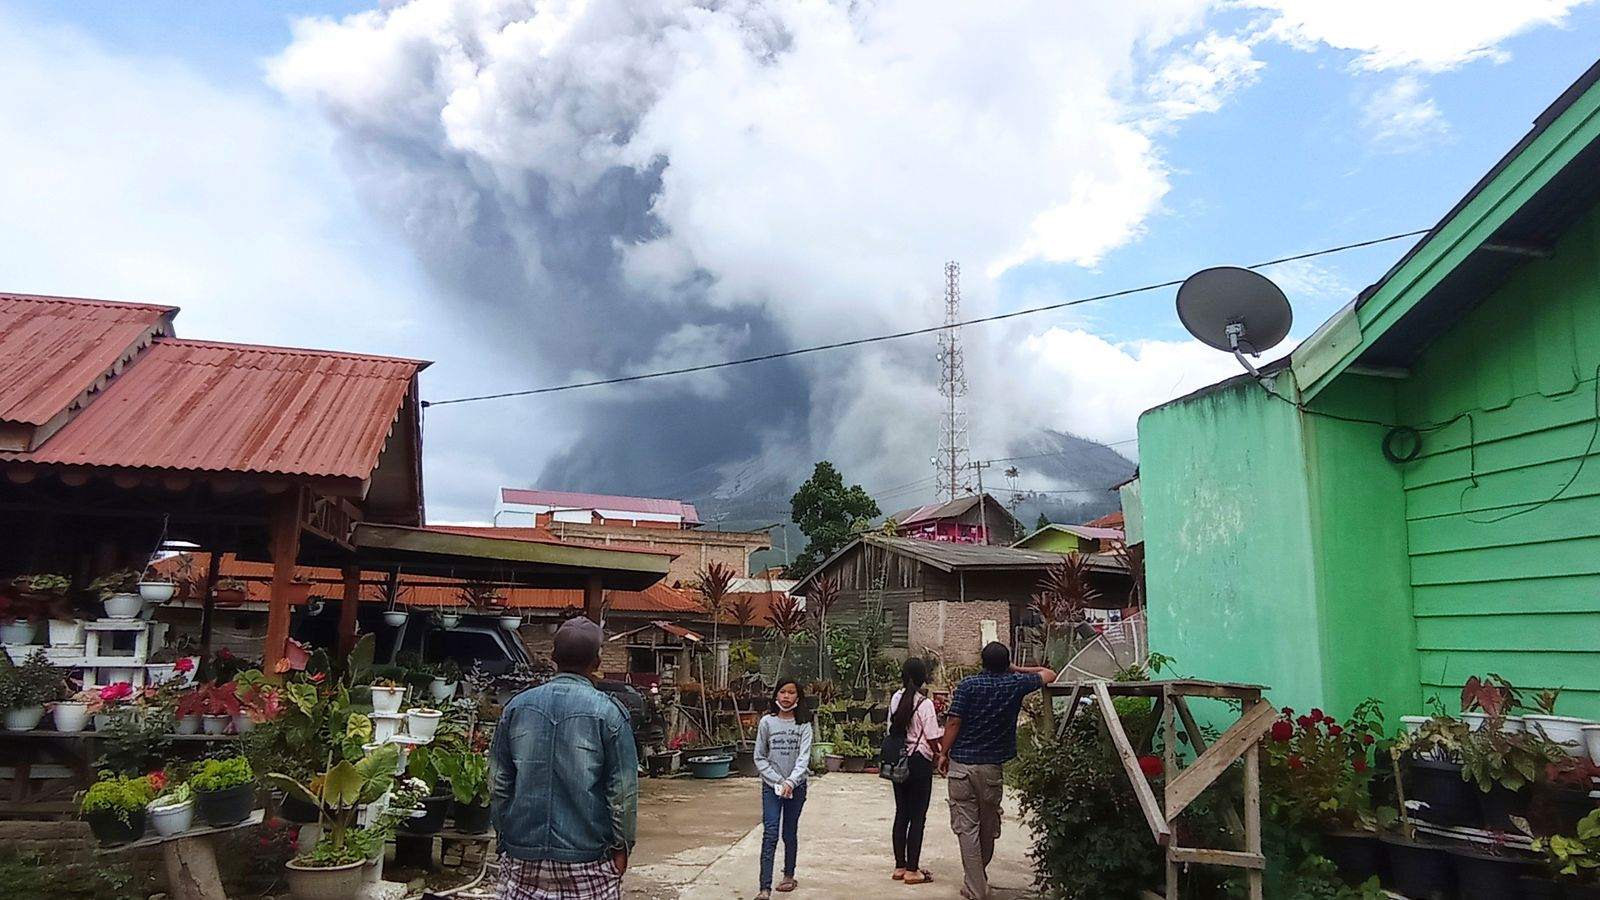 Indonesia's Mount Sinabung volcano erupts, sending column of ash 4,500m into the sky